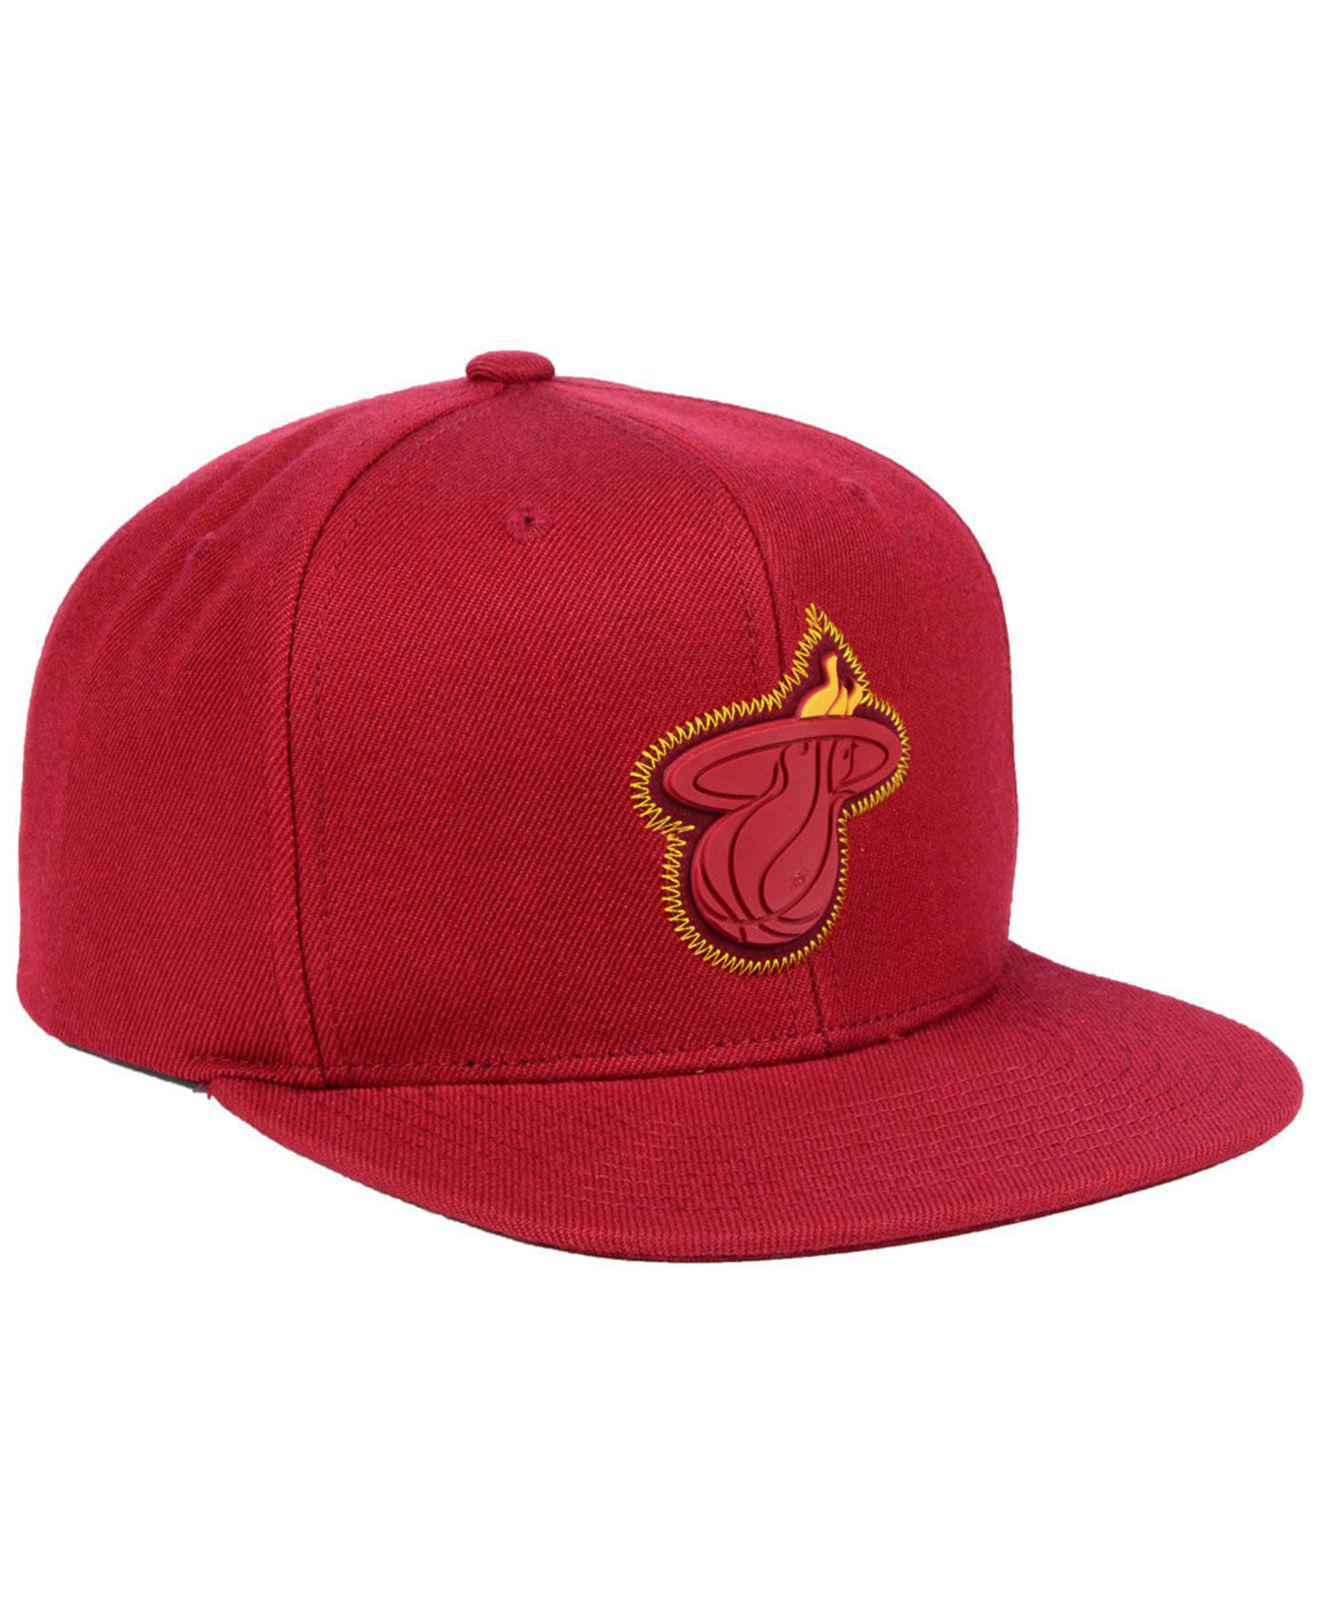 on sale 01466 0488b Mitchell   Ness Miami Heat Zig Zag Snapback Cap in Red for Men - Lyst